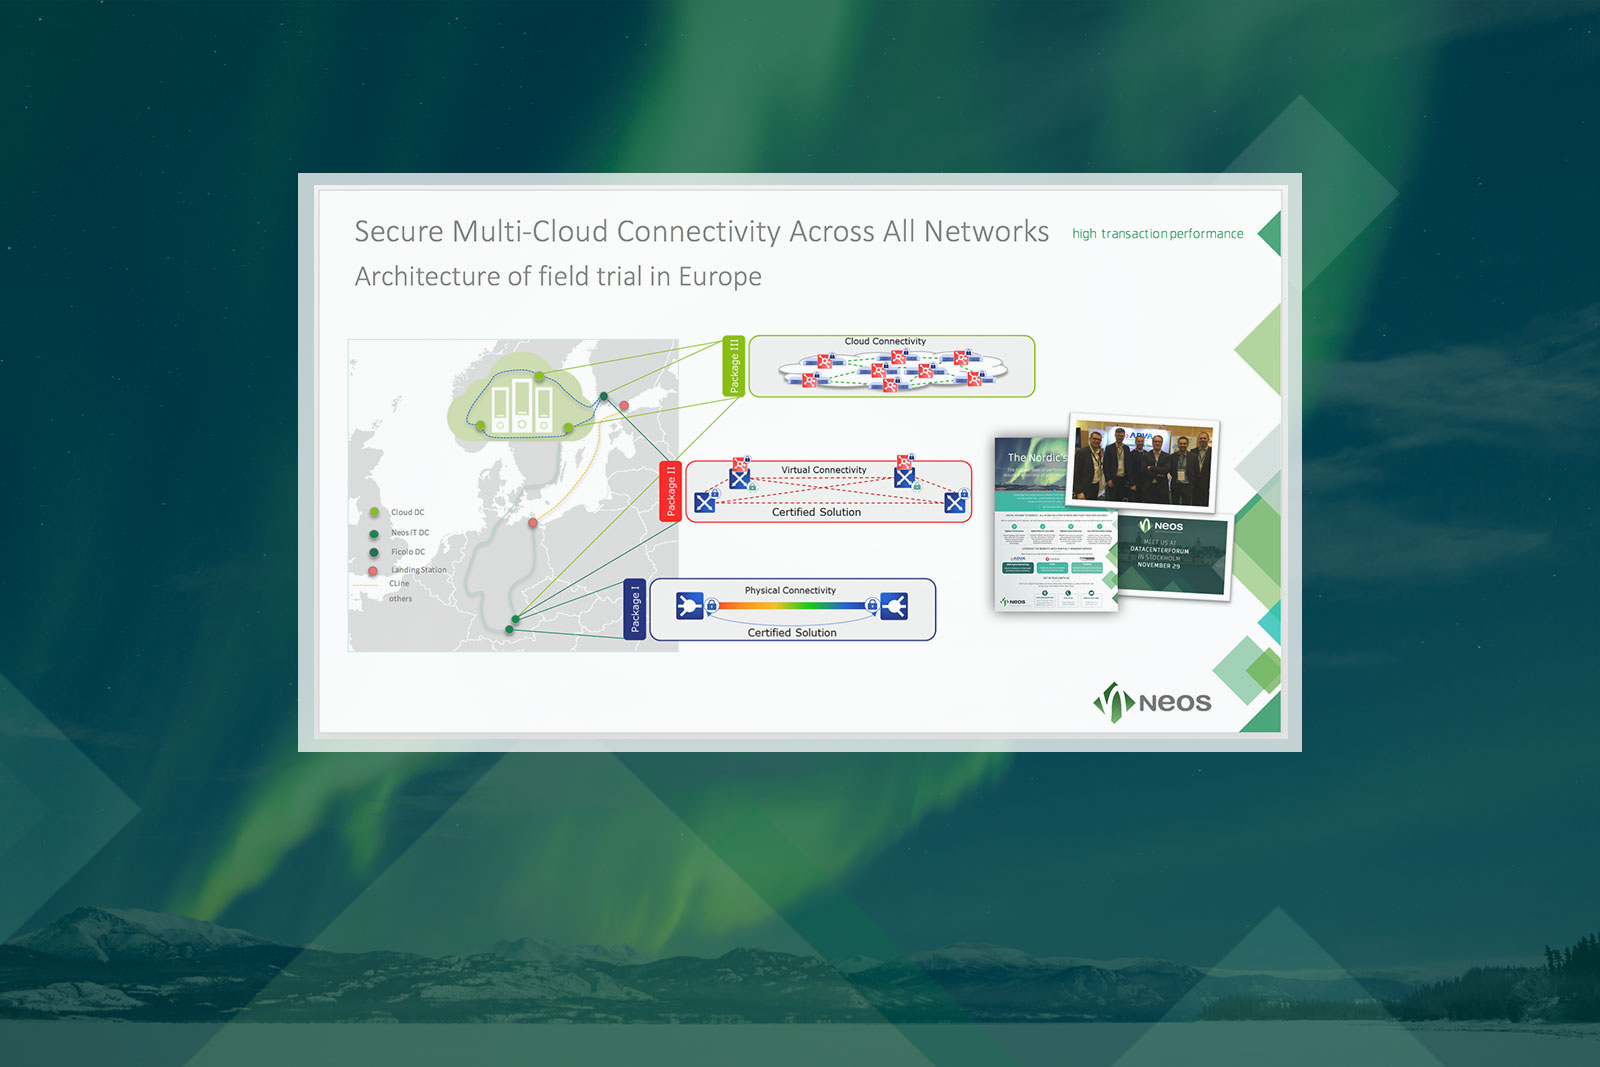 Neos IT Services, ppt folie, Proof of Concept Data Highway to the Nordics - Projektreferenzen